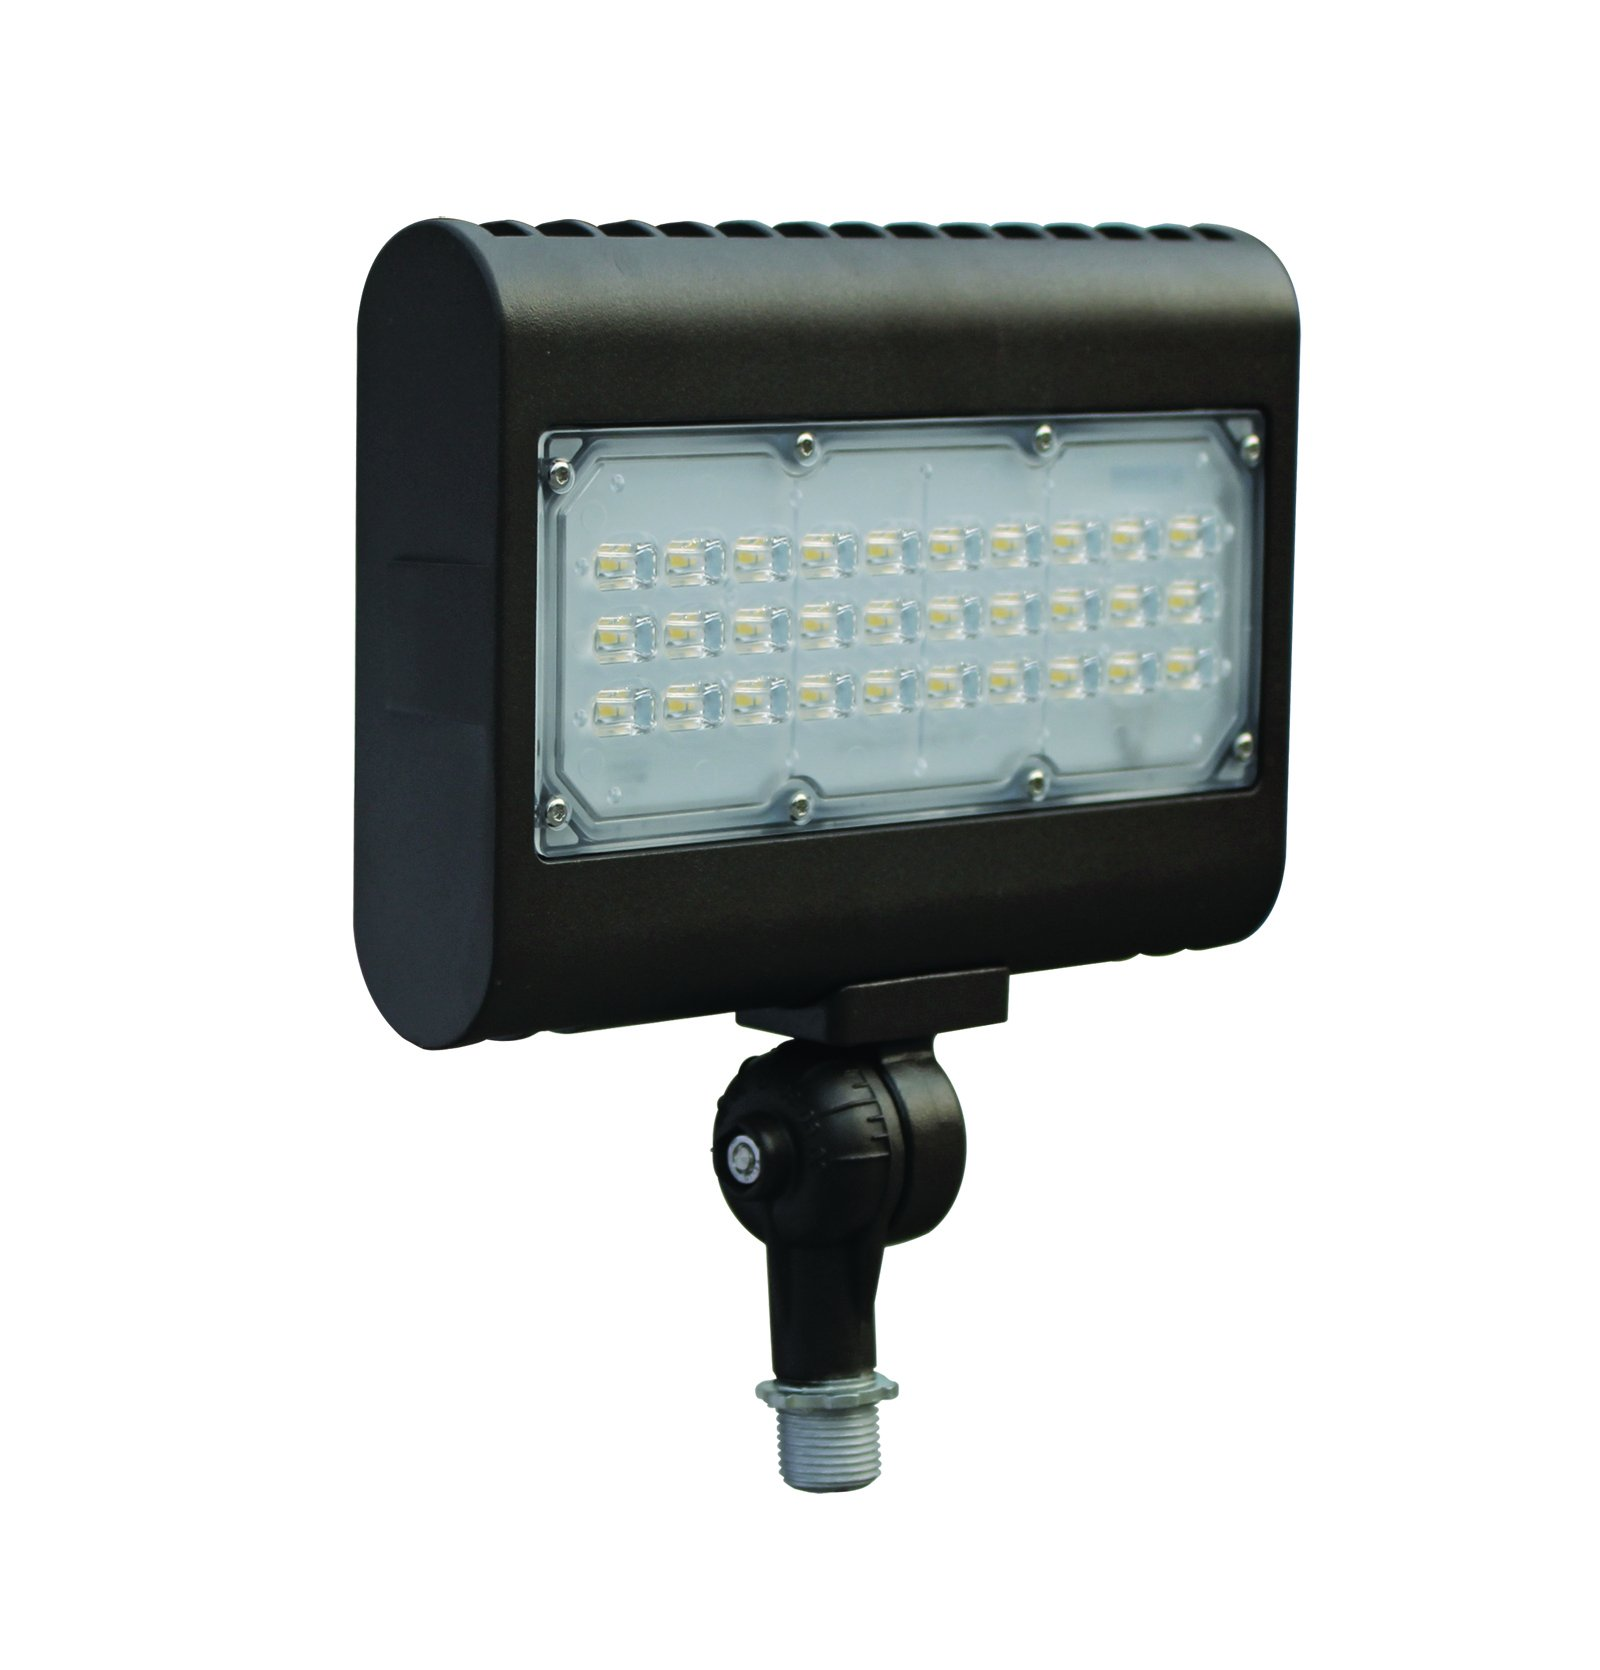 DLC-Listed LED 50 Watt Exterior Commercial Floodlight, 4000K Neutral White, 120V-277V, Comparable to 175-250W MH-HPS, 4900 Lumens, Threaded Box Mount, UL-Listed, LEDrock Warranty Based Denver, CO, USA by LEDrock